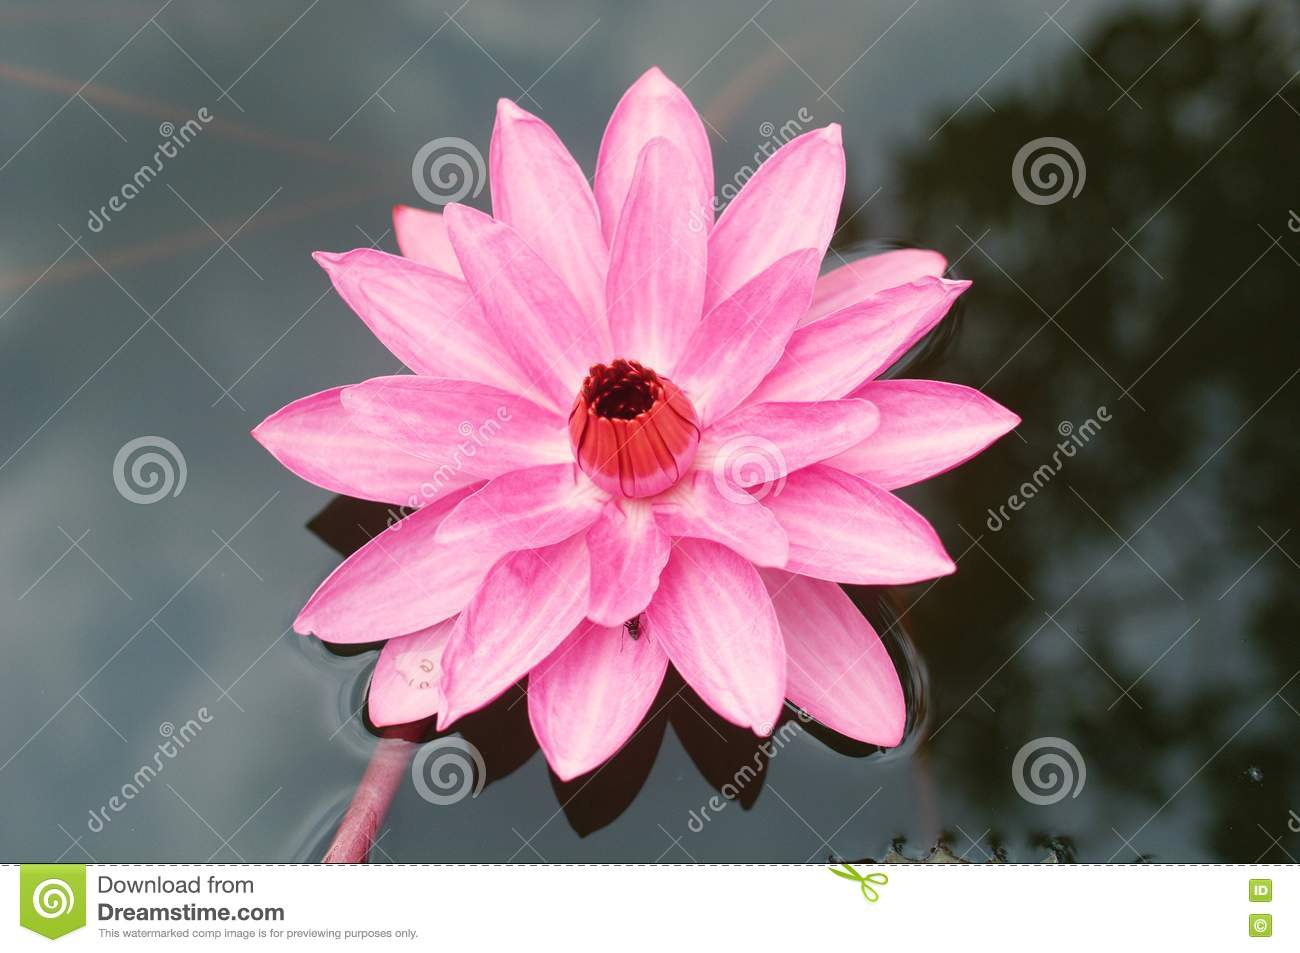 Lotus or water lily flower the national flower of vietnam cartoon lotus or water lily flower the national flower of vietnam cartoon vector cartoondealer 71734649 izmirmasajfo